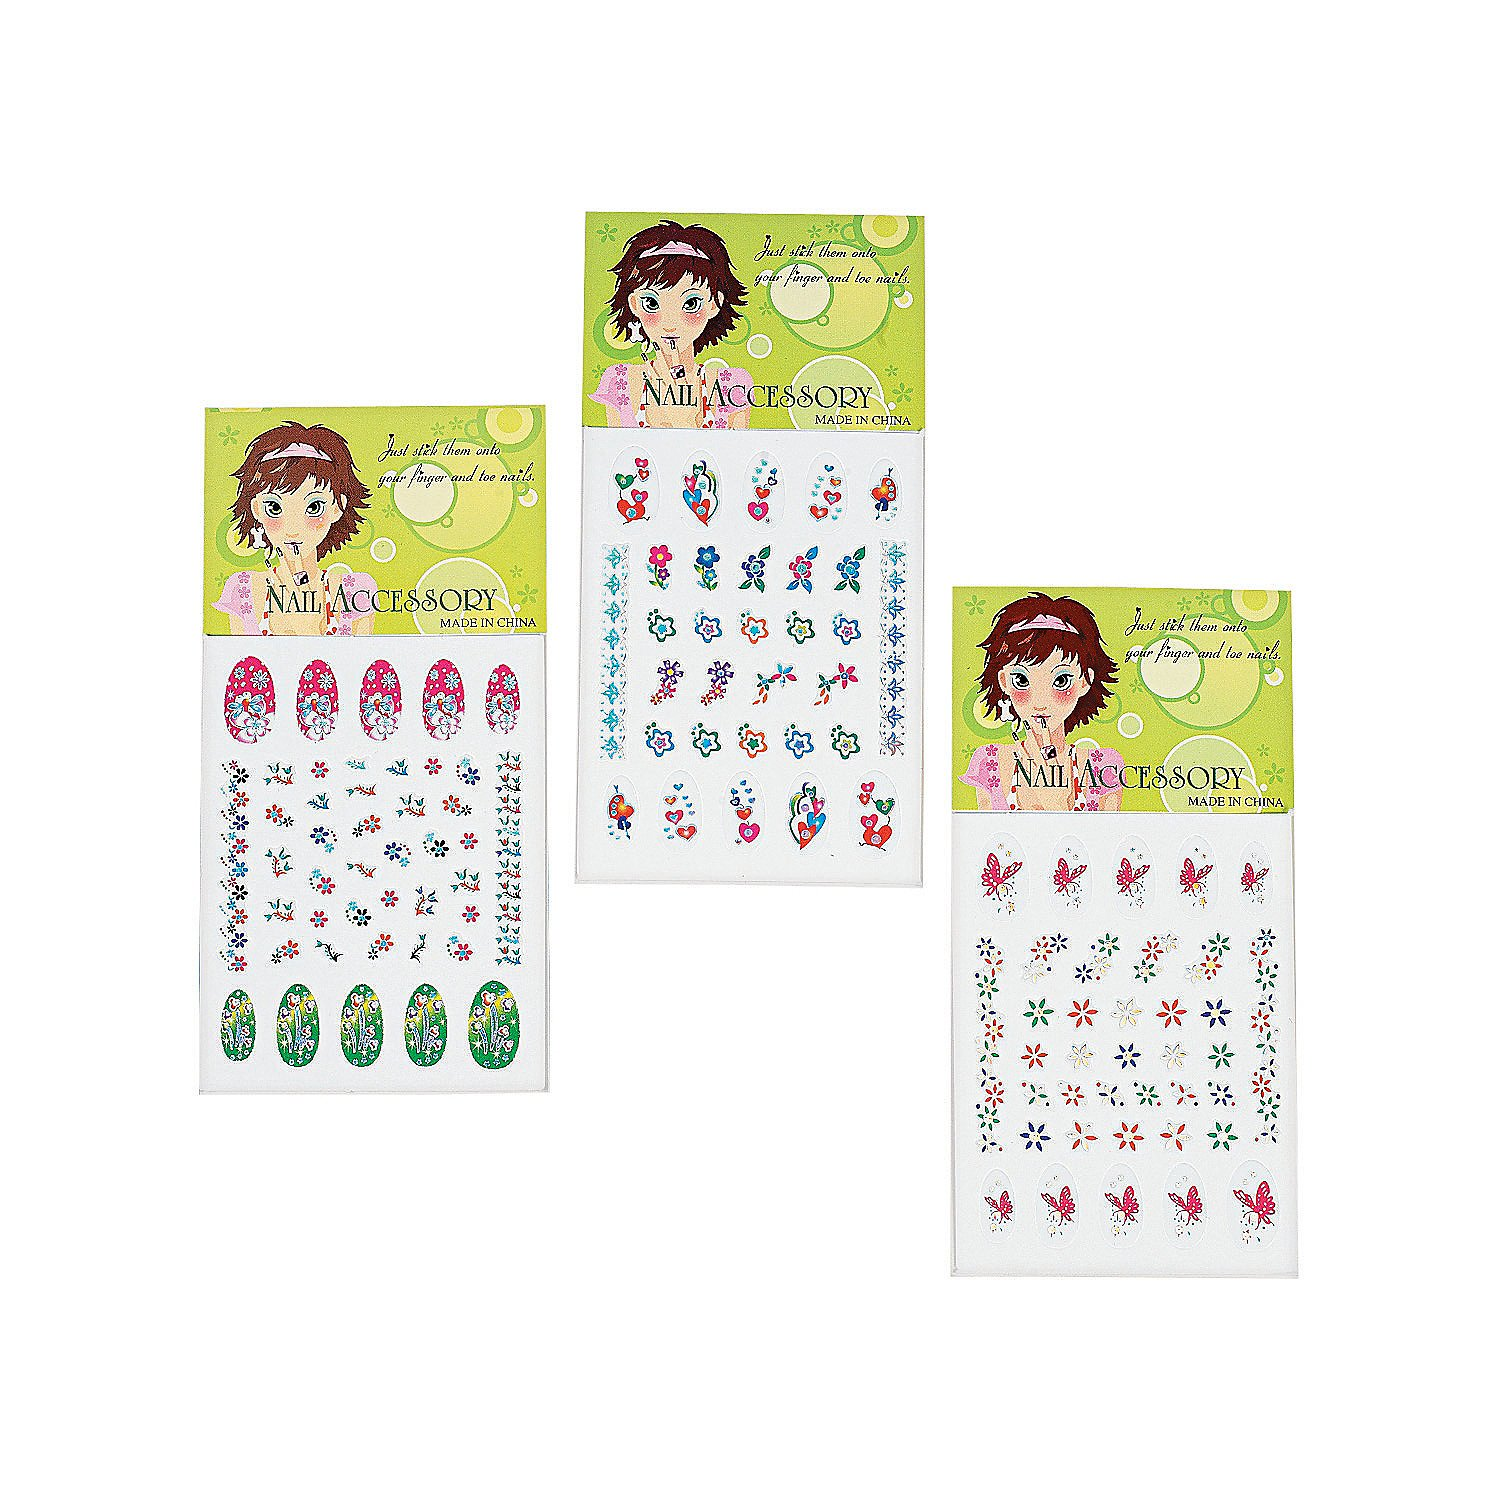 Kidsco Nail Decals – 24 Sheets, 30 Decals Per Sheet - Nail Art Stickers Assortment Of Colors And Designs – Great Party Favors, Summer, Gift, Prize – By Prize – By Kayco USA